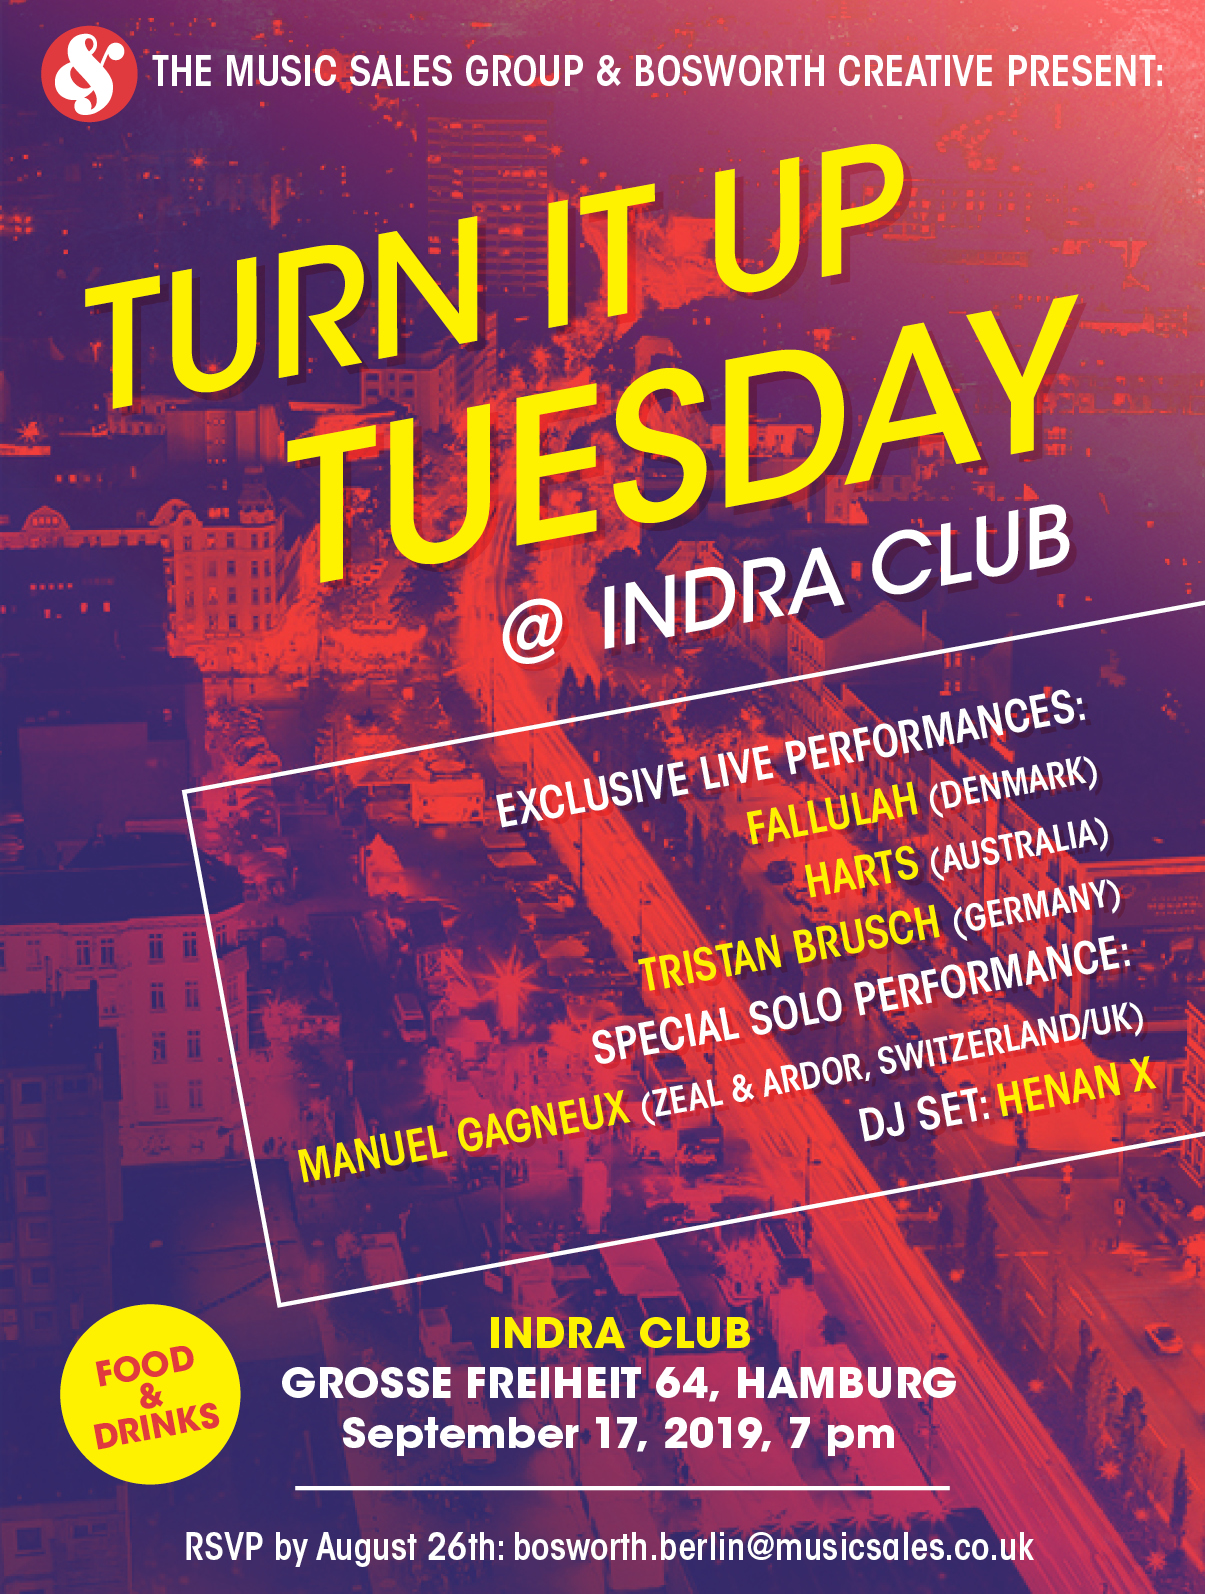 Turn it up Tuesday @ Indra Club 64